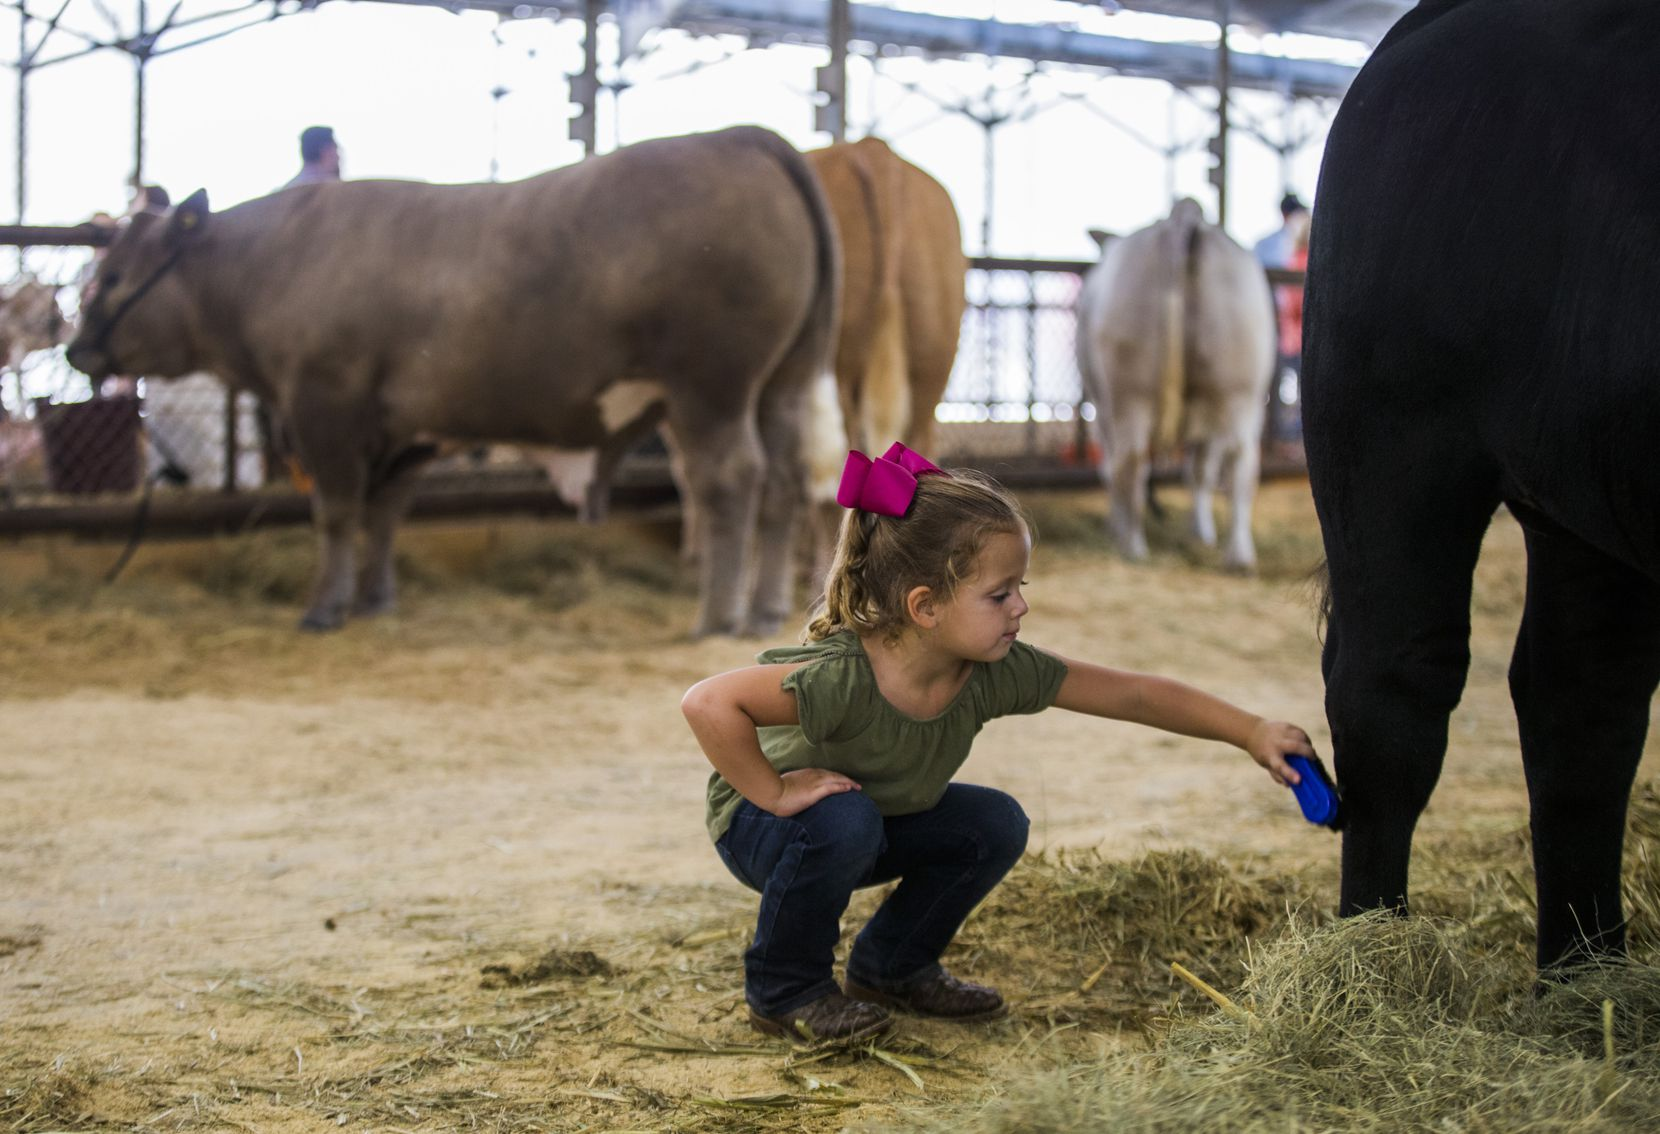 Harper McMurphy, who was 4 at the time, brushed a black steer that was shown by her brother, 8-year-old Layton McMurphy (not pictured), at the State Fair of Texas last fall.